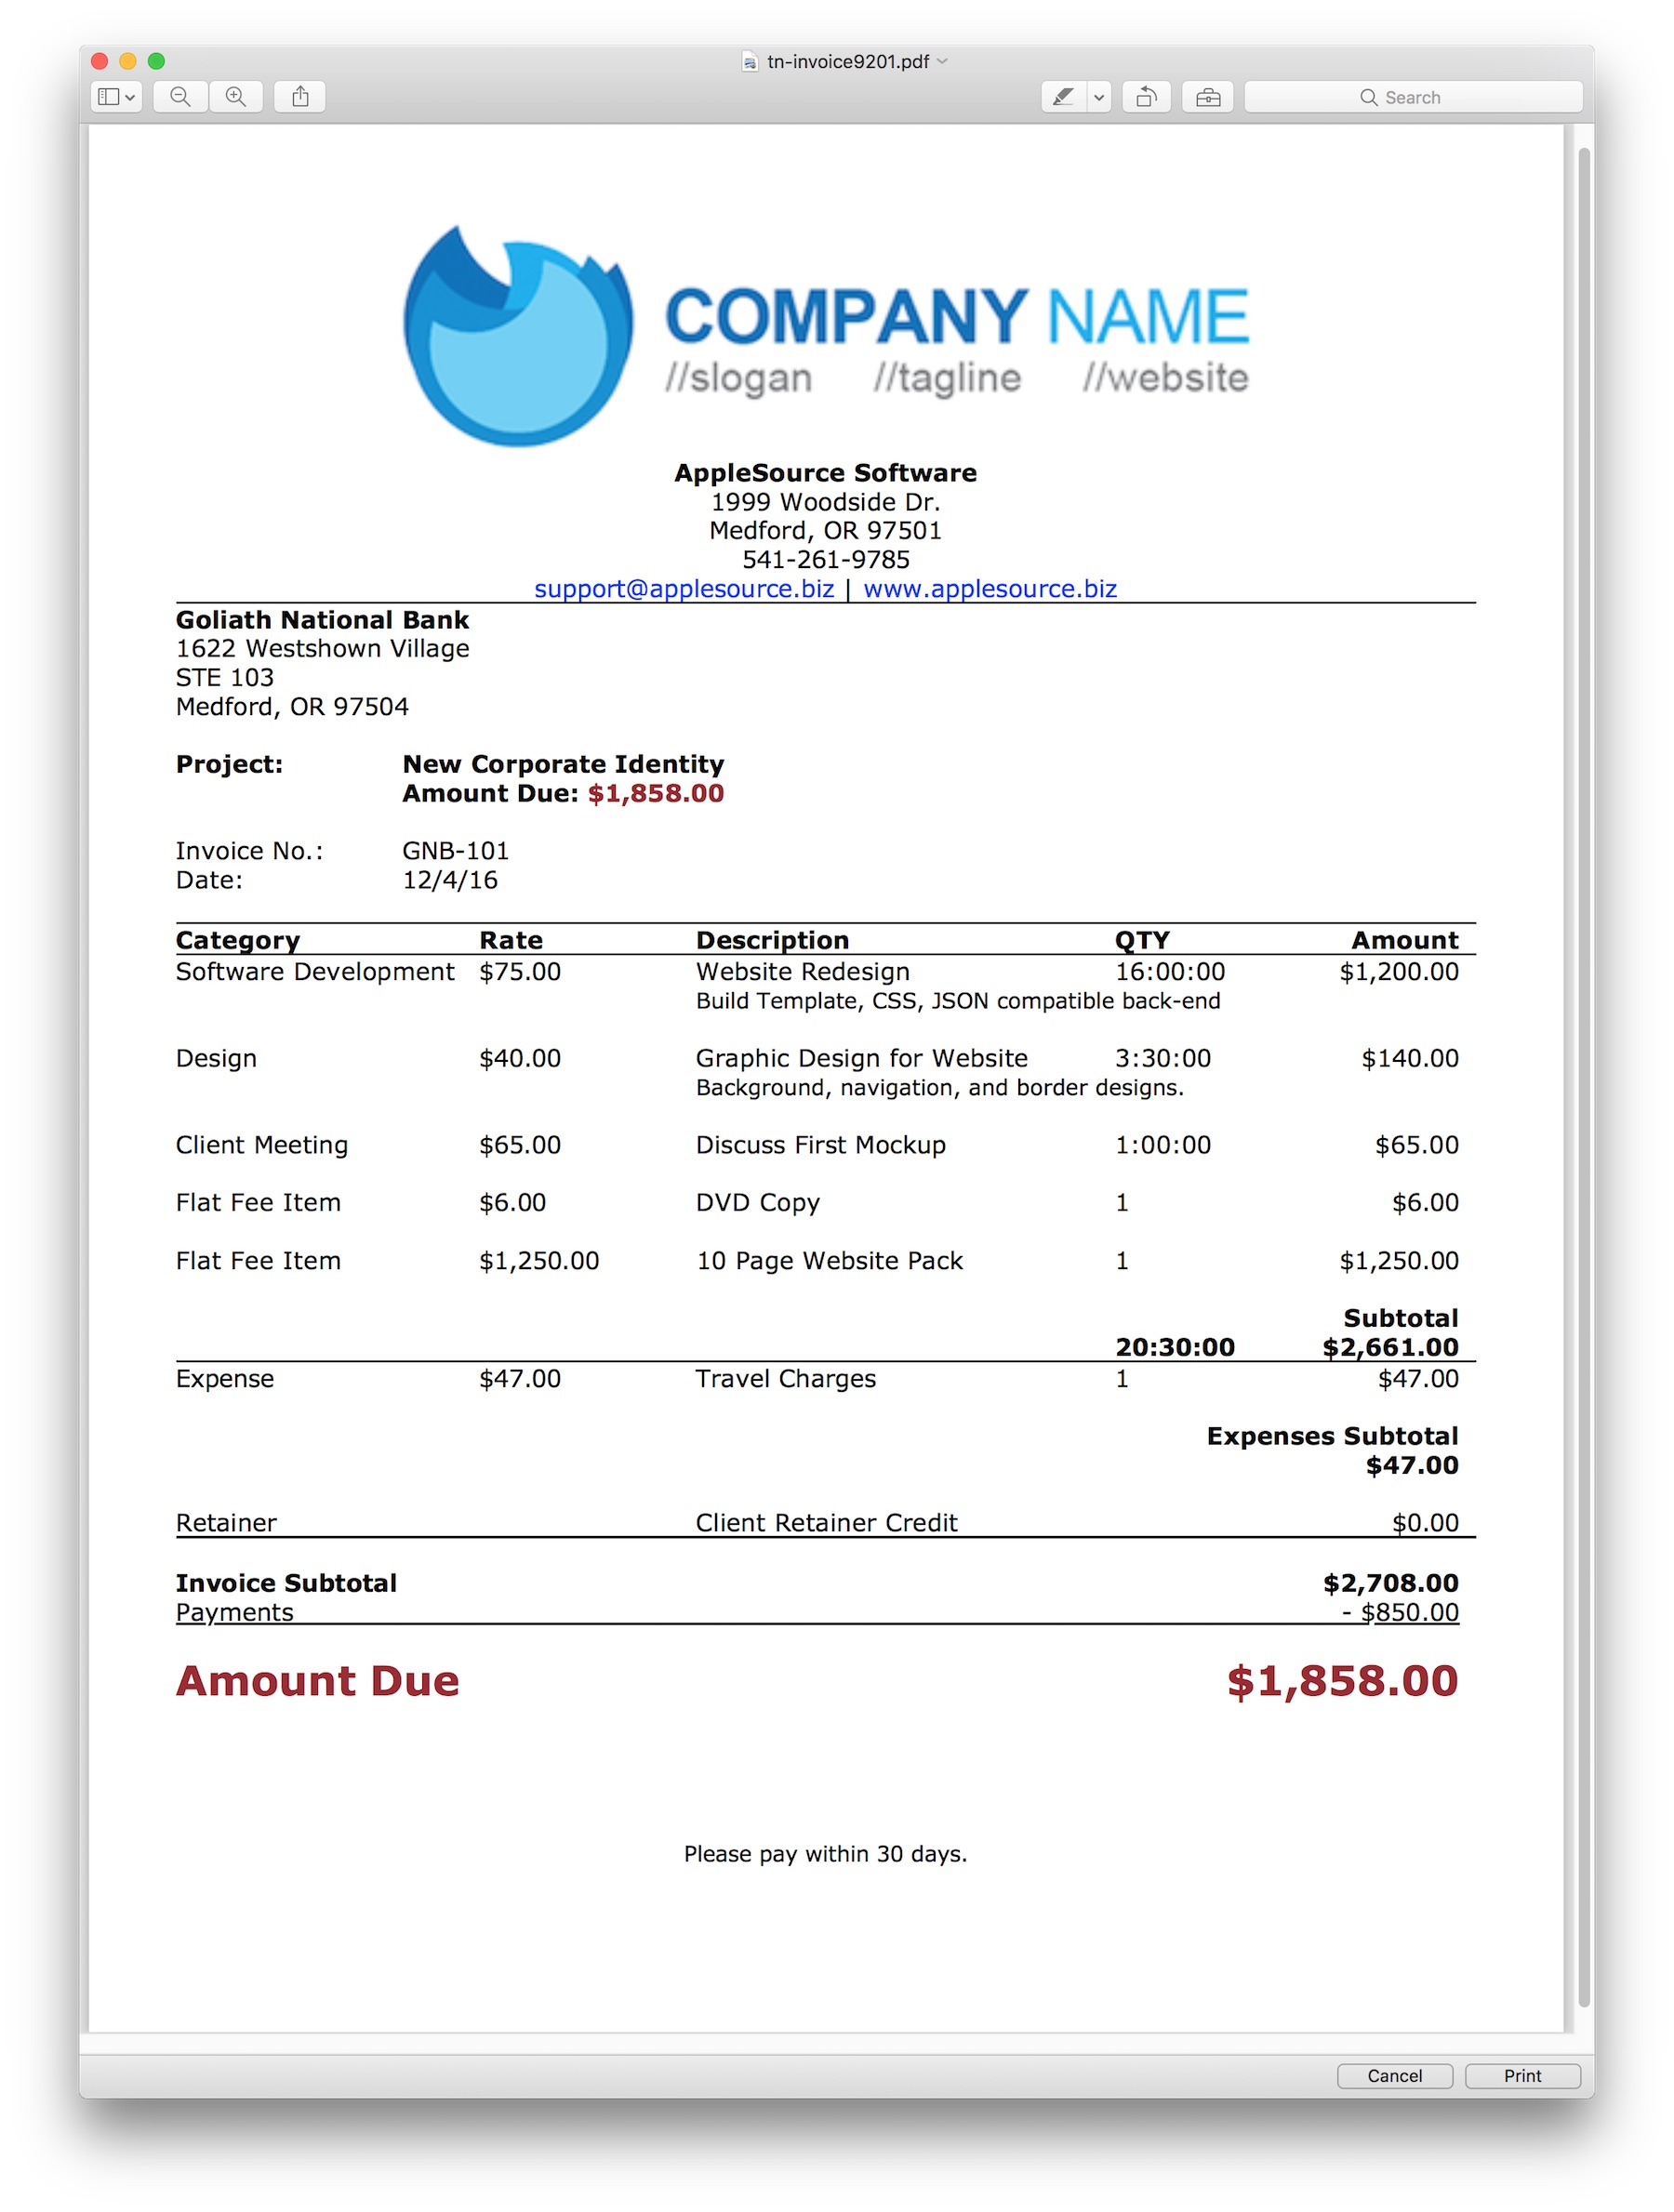 AppleSource Software TimeNet Invoice Templates Time Tracking - Elegant invoice template